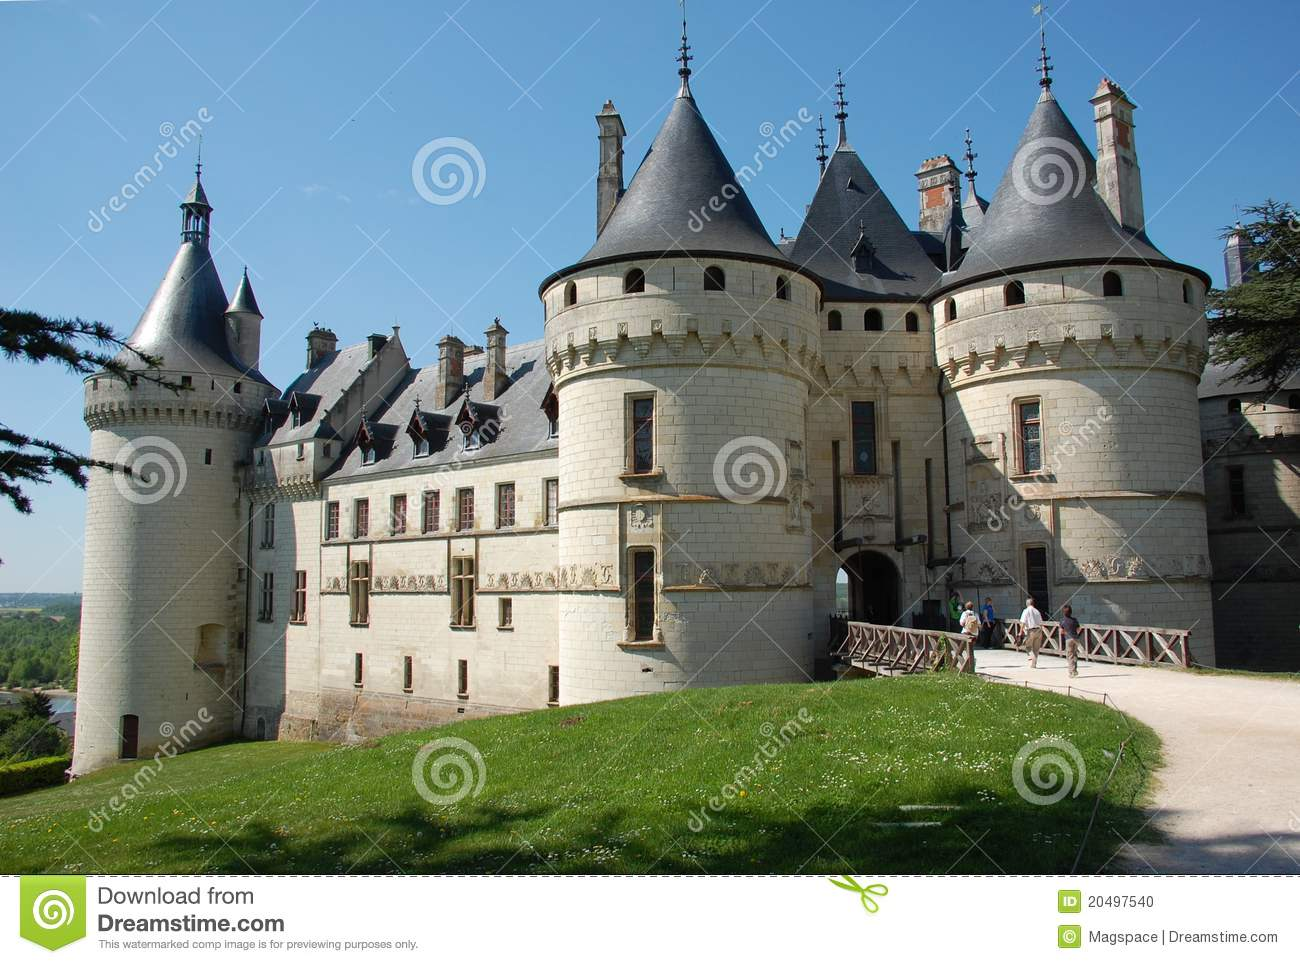 chaumont sul castello del loire fotografia stock immagine 20497540. Black Bedroom Furniture Sets. Home Design Ideas